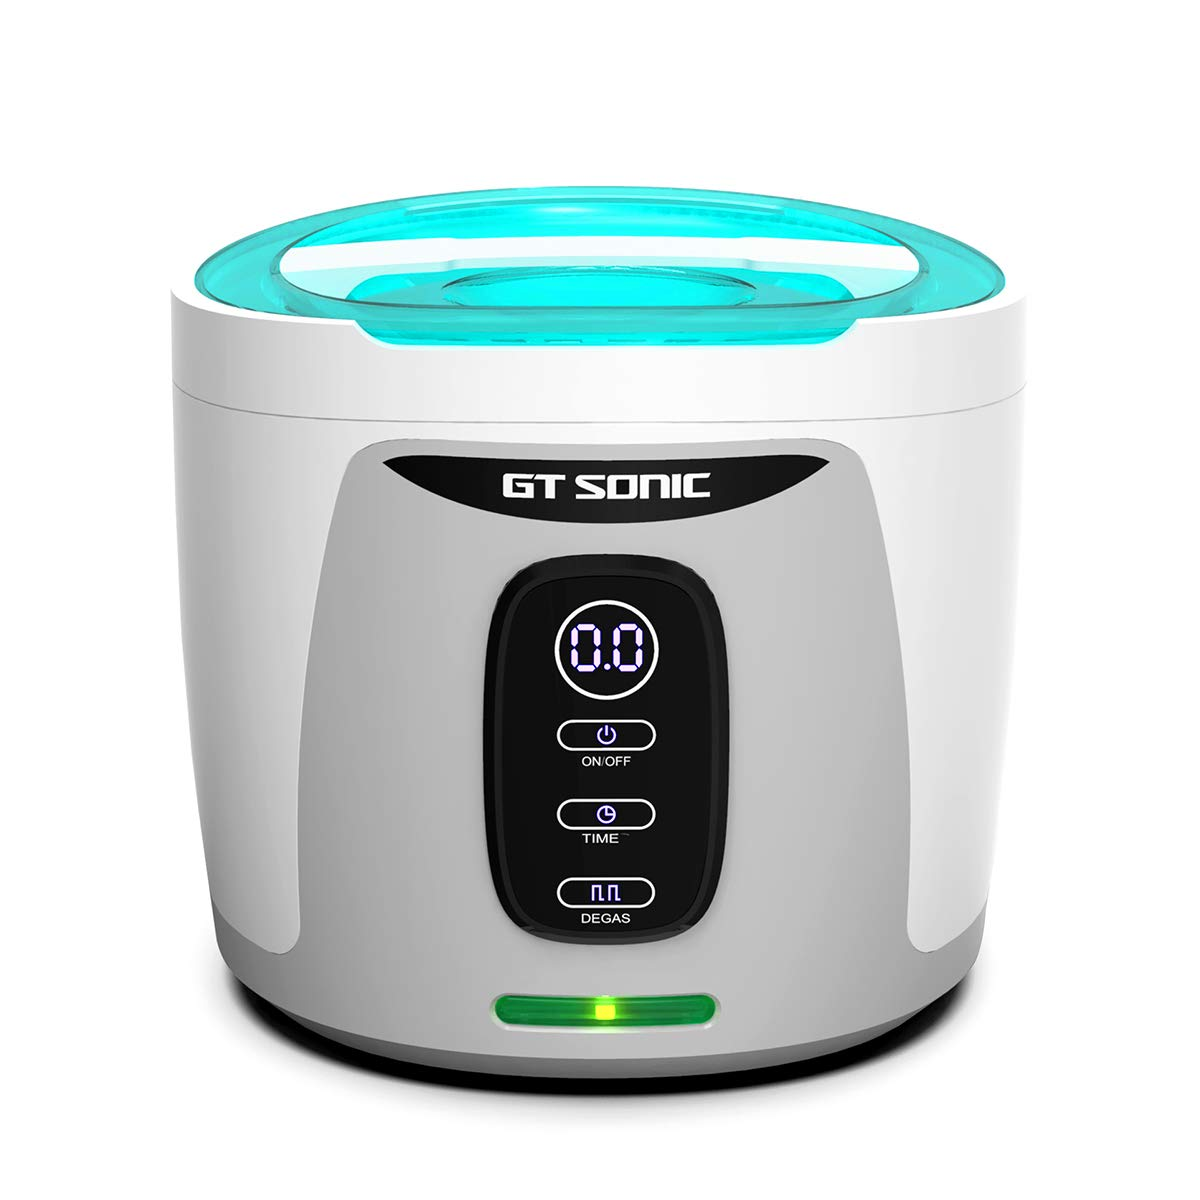 GTSONIC Ultrasonic Cleaner Jewelry Glasses Dentures Professional Detachable Cleaning Machine, 4 Timer Cycles Auto-Off, 26 OZ, 35 W by GTSONIC